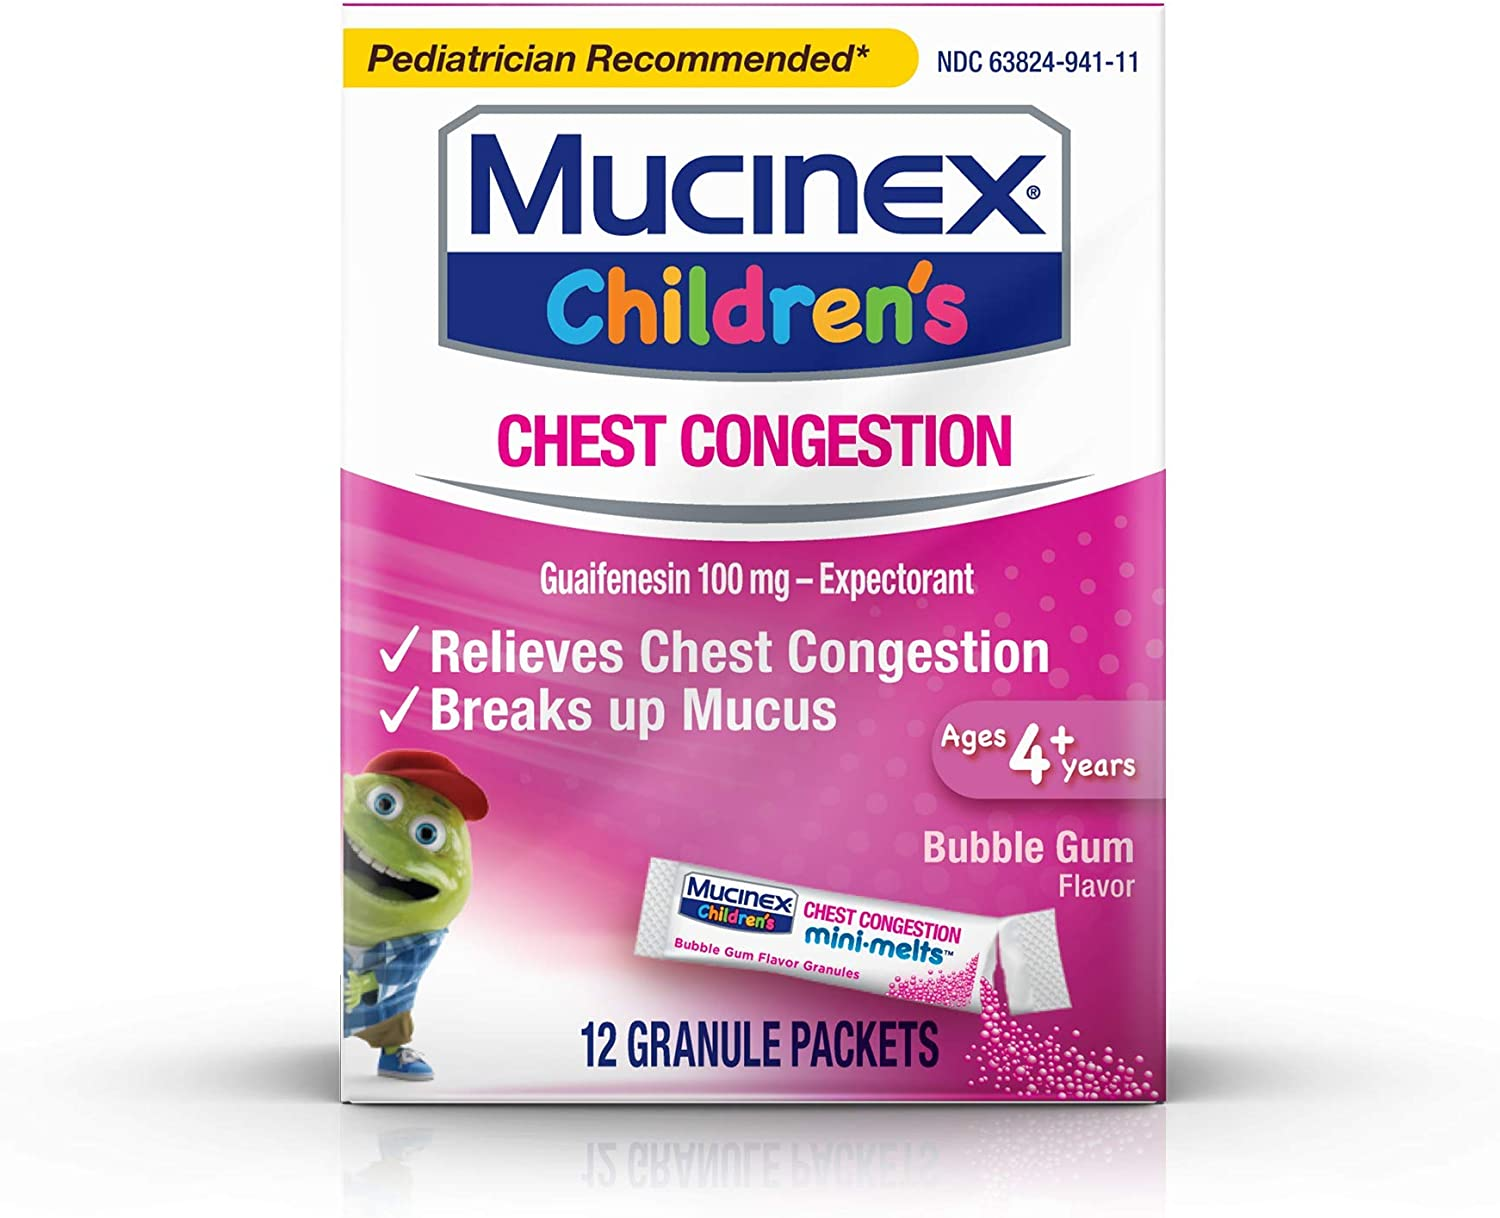 Chest Congestion Mucinex Children S Mini Melts Chest Congestion Bubble Gum 12ct Packaging May Vary